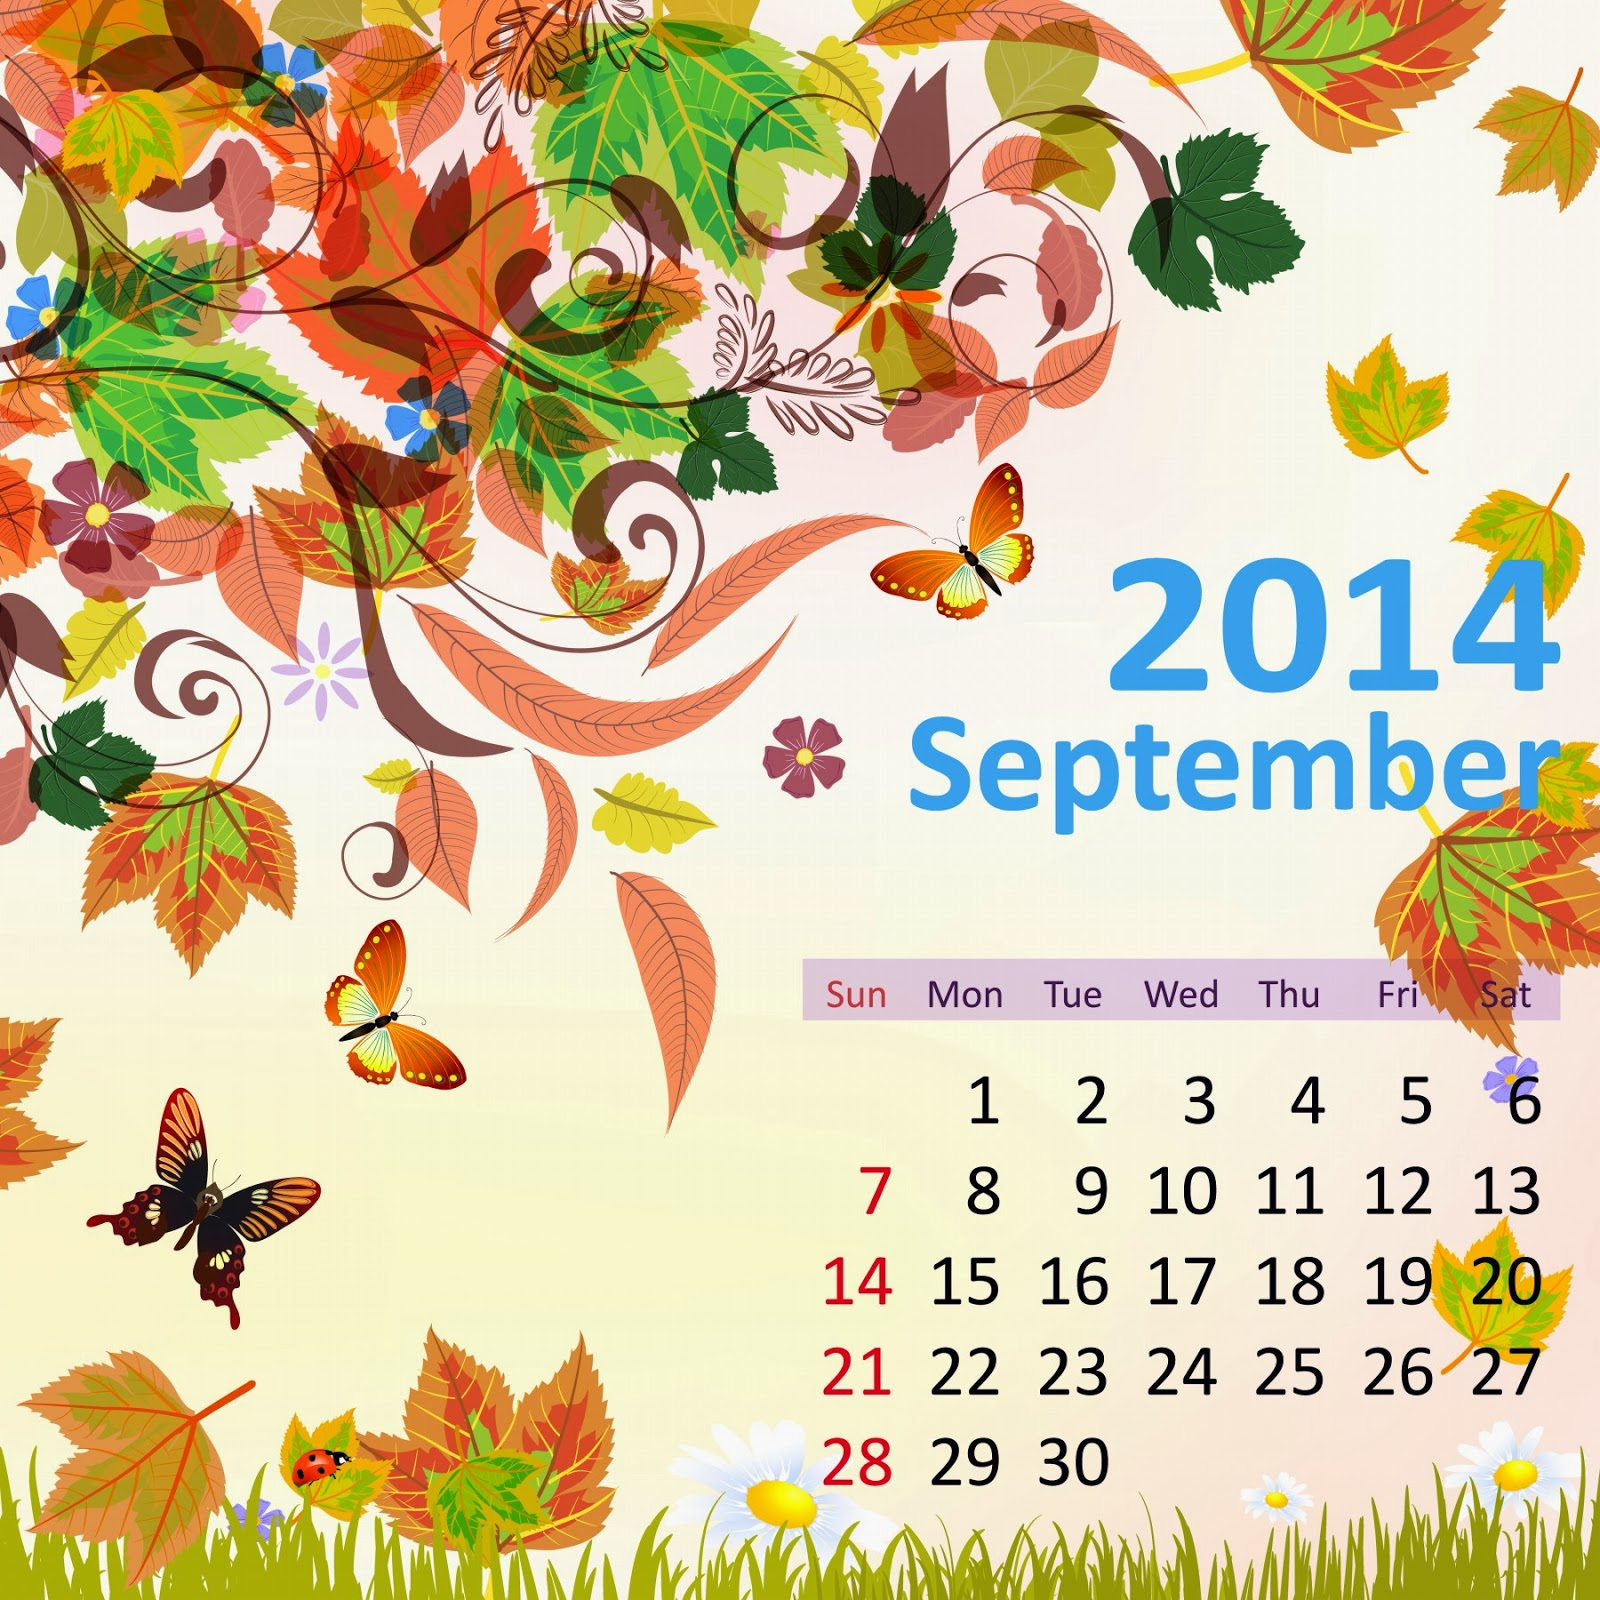 Fascinating Flower Hd 12 Months Calenders 2014   Florecent Happy New Yea Wallpapers